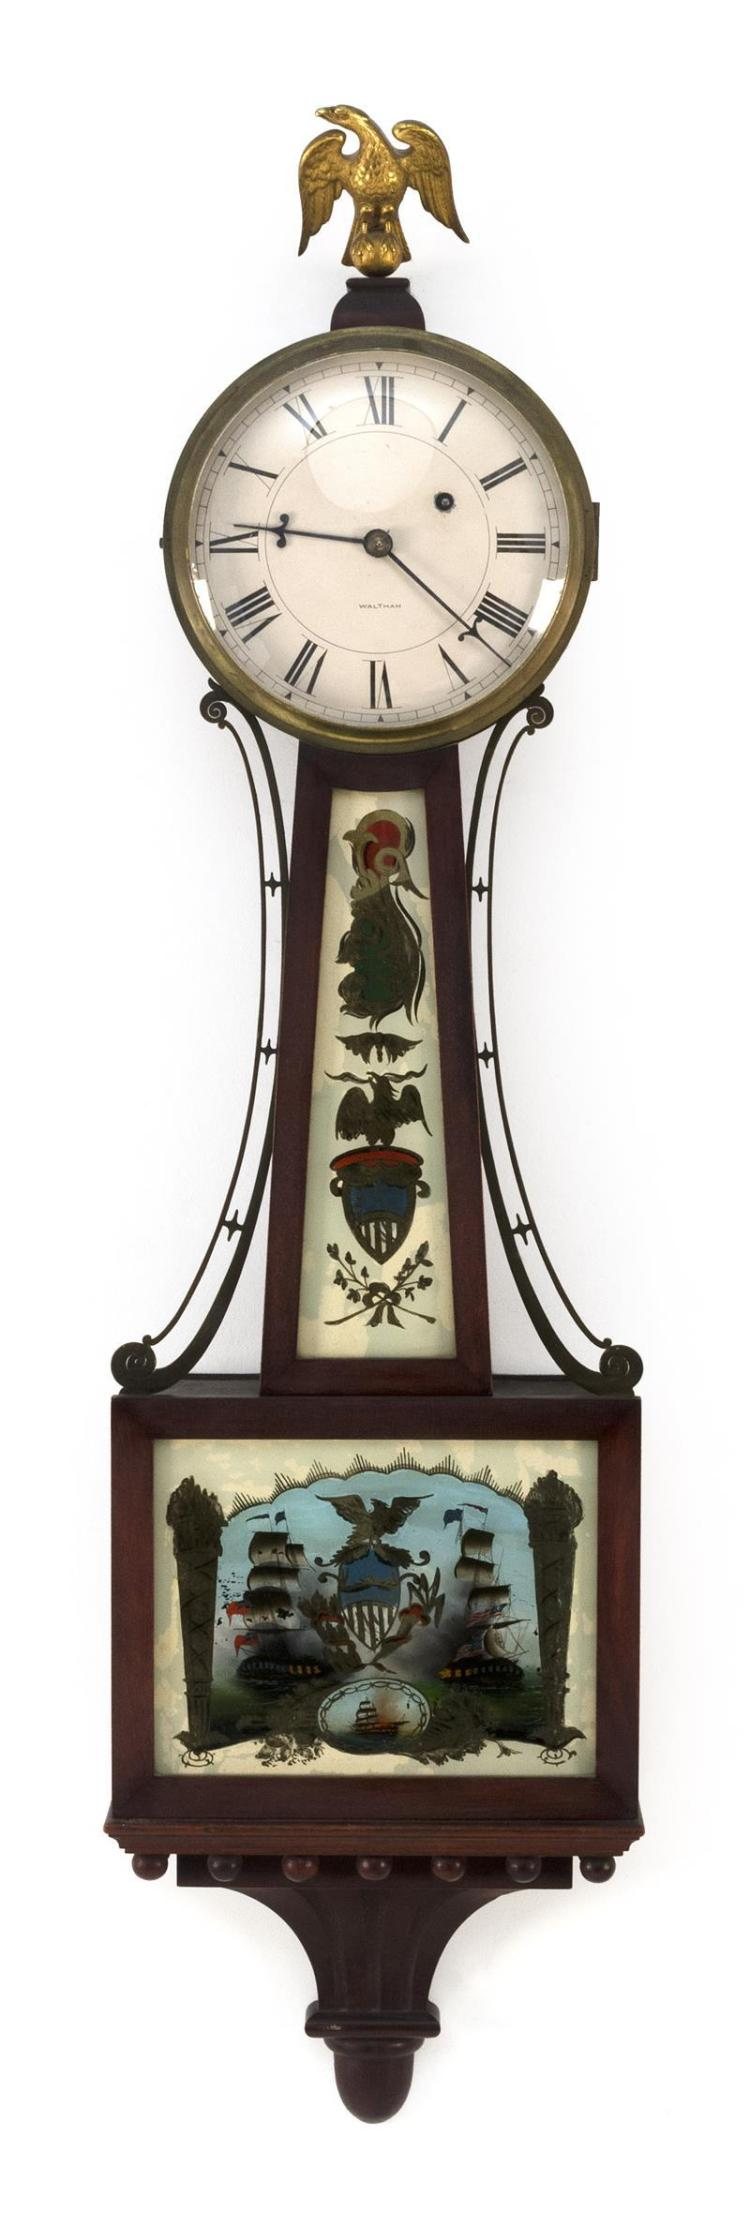 Waltham Wall Clock Reverse Painted Throat Glass Depicts An E